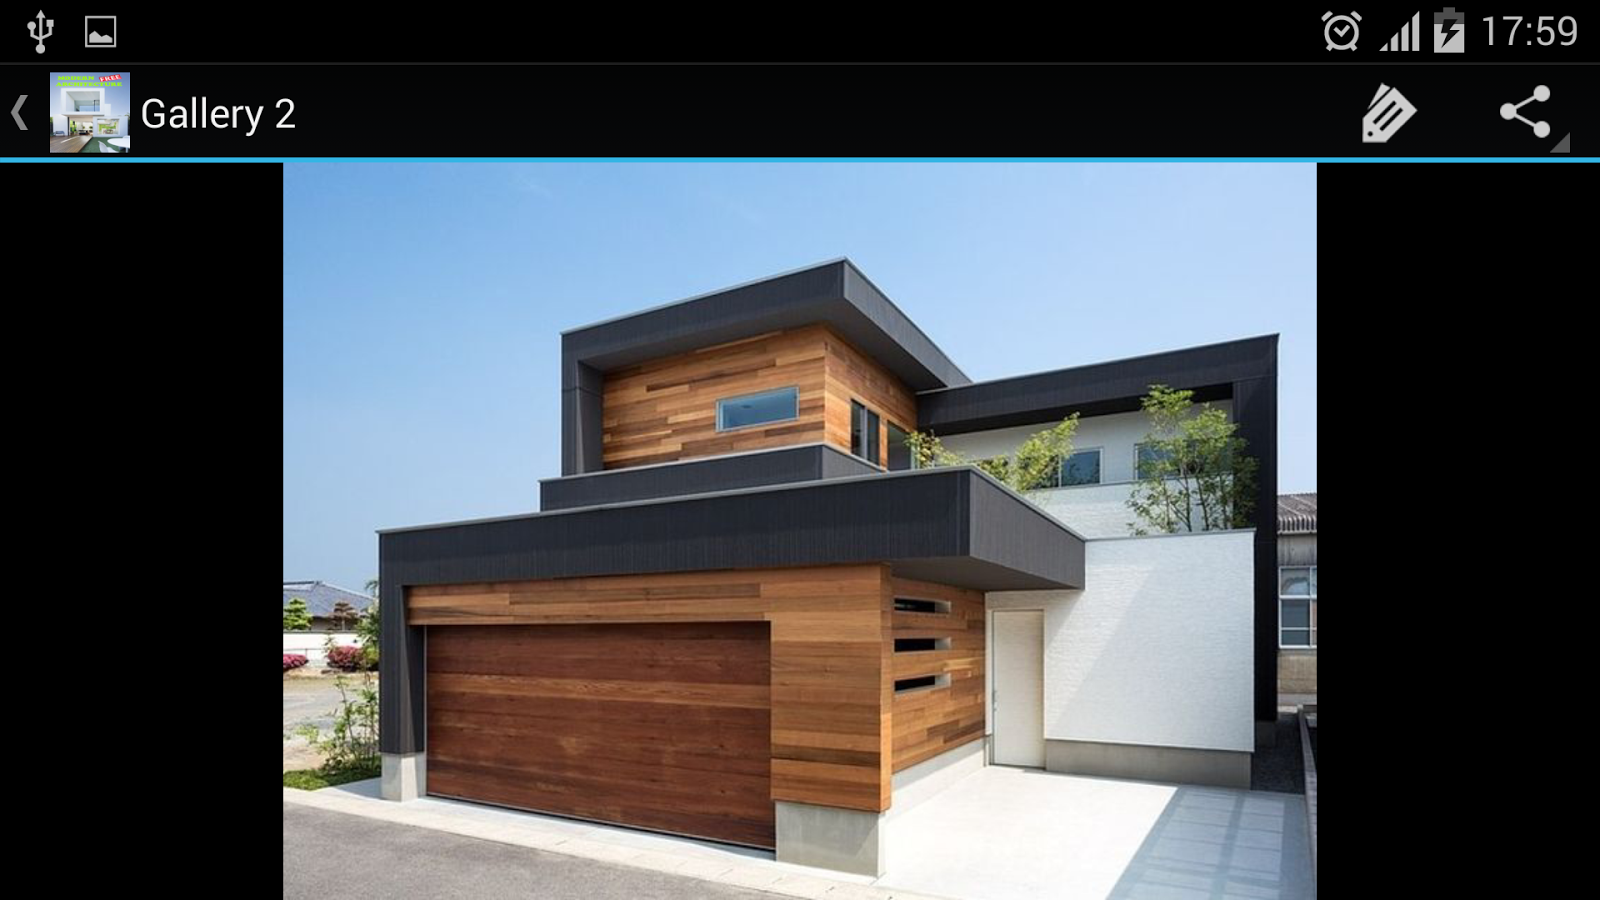 Modern Architecture Images modern architecture - android apps on google play